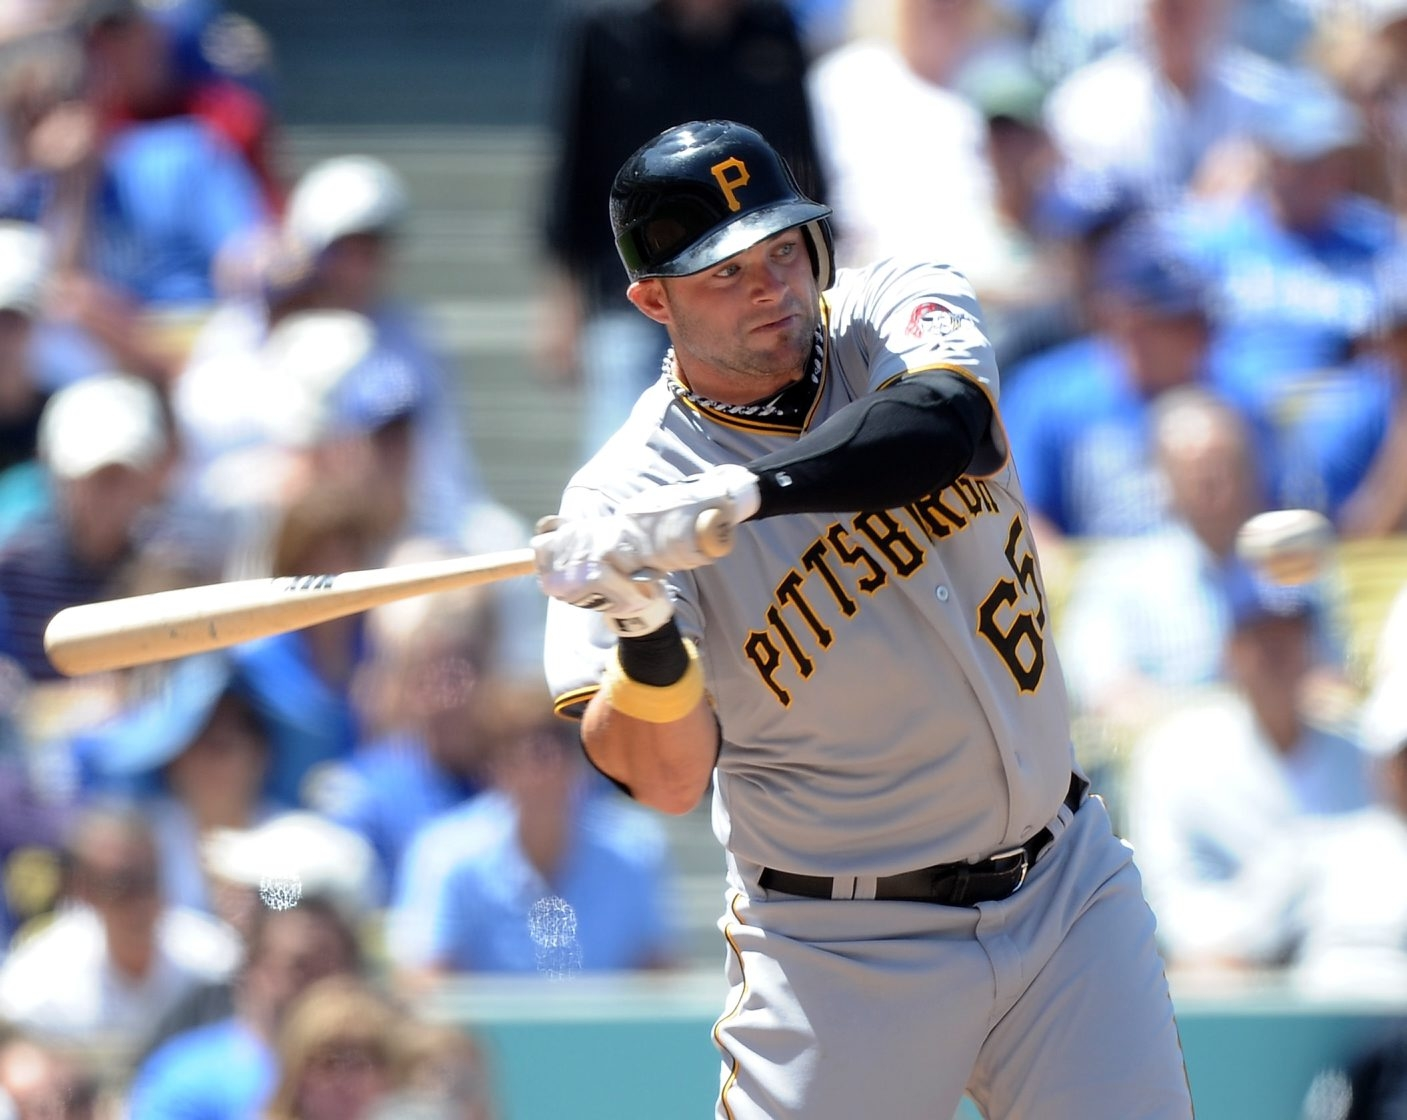 Matt Hague was a member of the Pittsburgh Pirates organization before coming over to the Bisons on Monday.